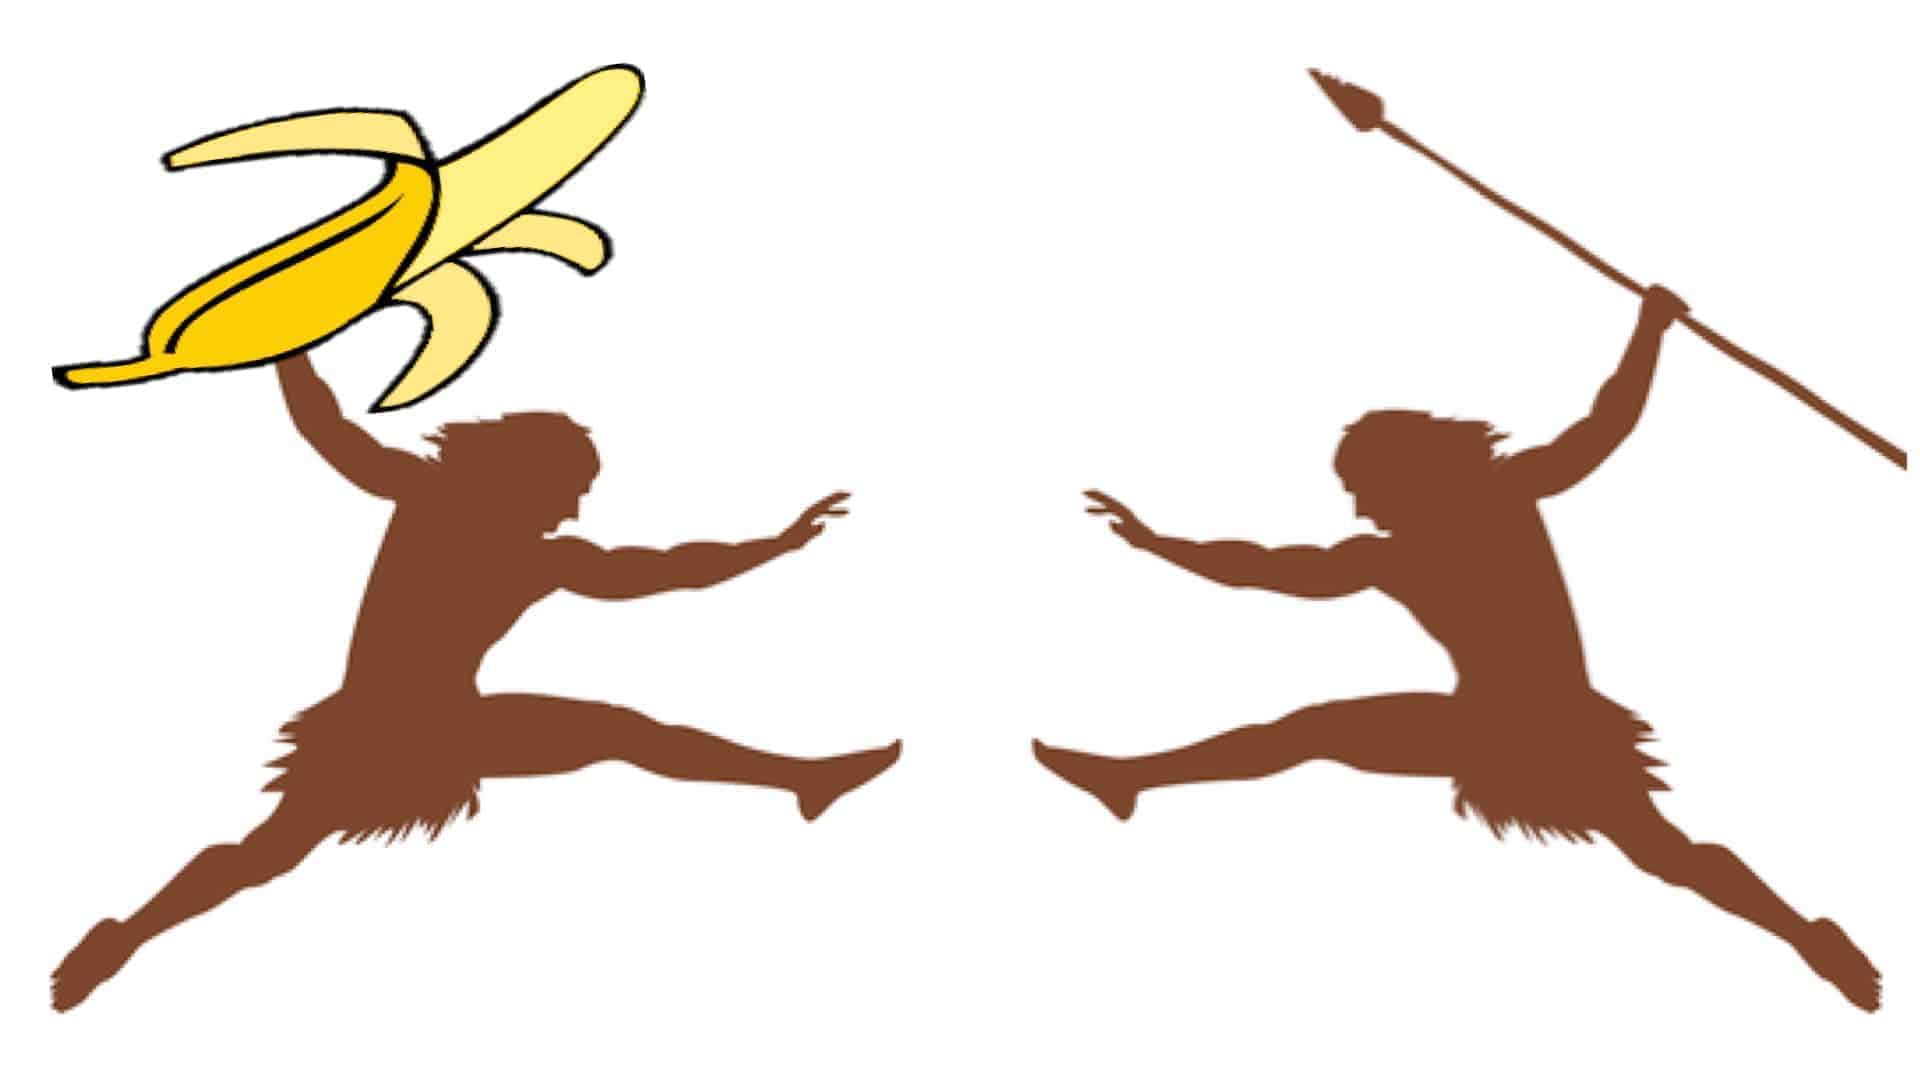 Two similar silhouettes are shown. Their outline would suggest they are of primitive man. They are leaping towards each other. The one on the right is holding a spear. The one on the left a banana.